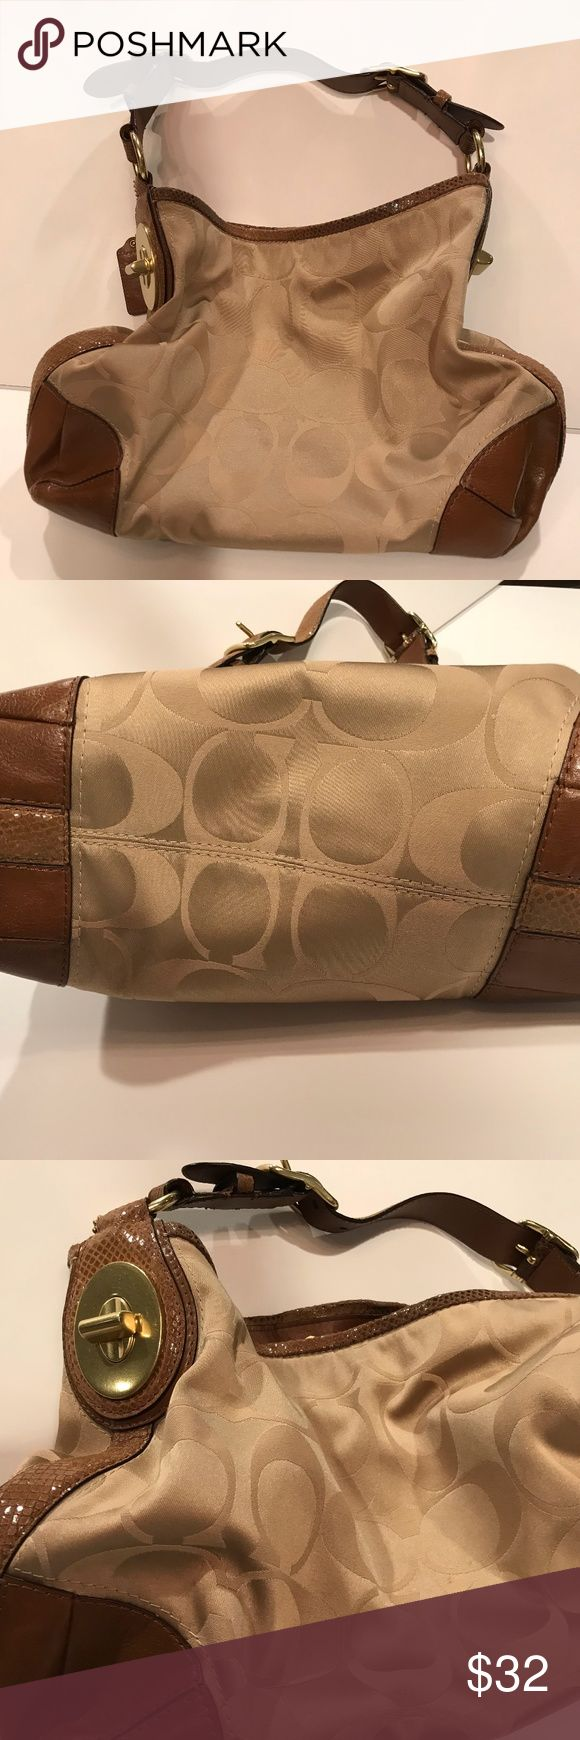 Coach Hobo Bag Classic Coach!  Creme/Beige soft satin with leather/snakeskin trim & shoulder strap.  Gold tone hardwear with no signs of wear.  This bag was barely ever taken out.  Dust bag included. Coach Bags Hobos